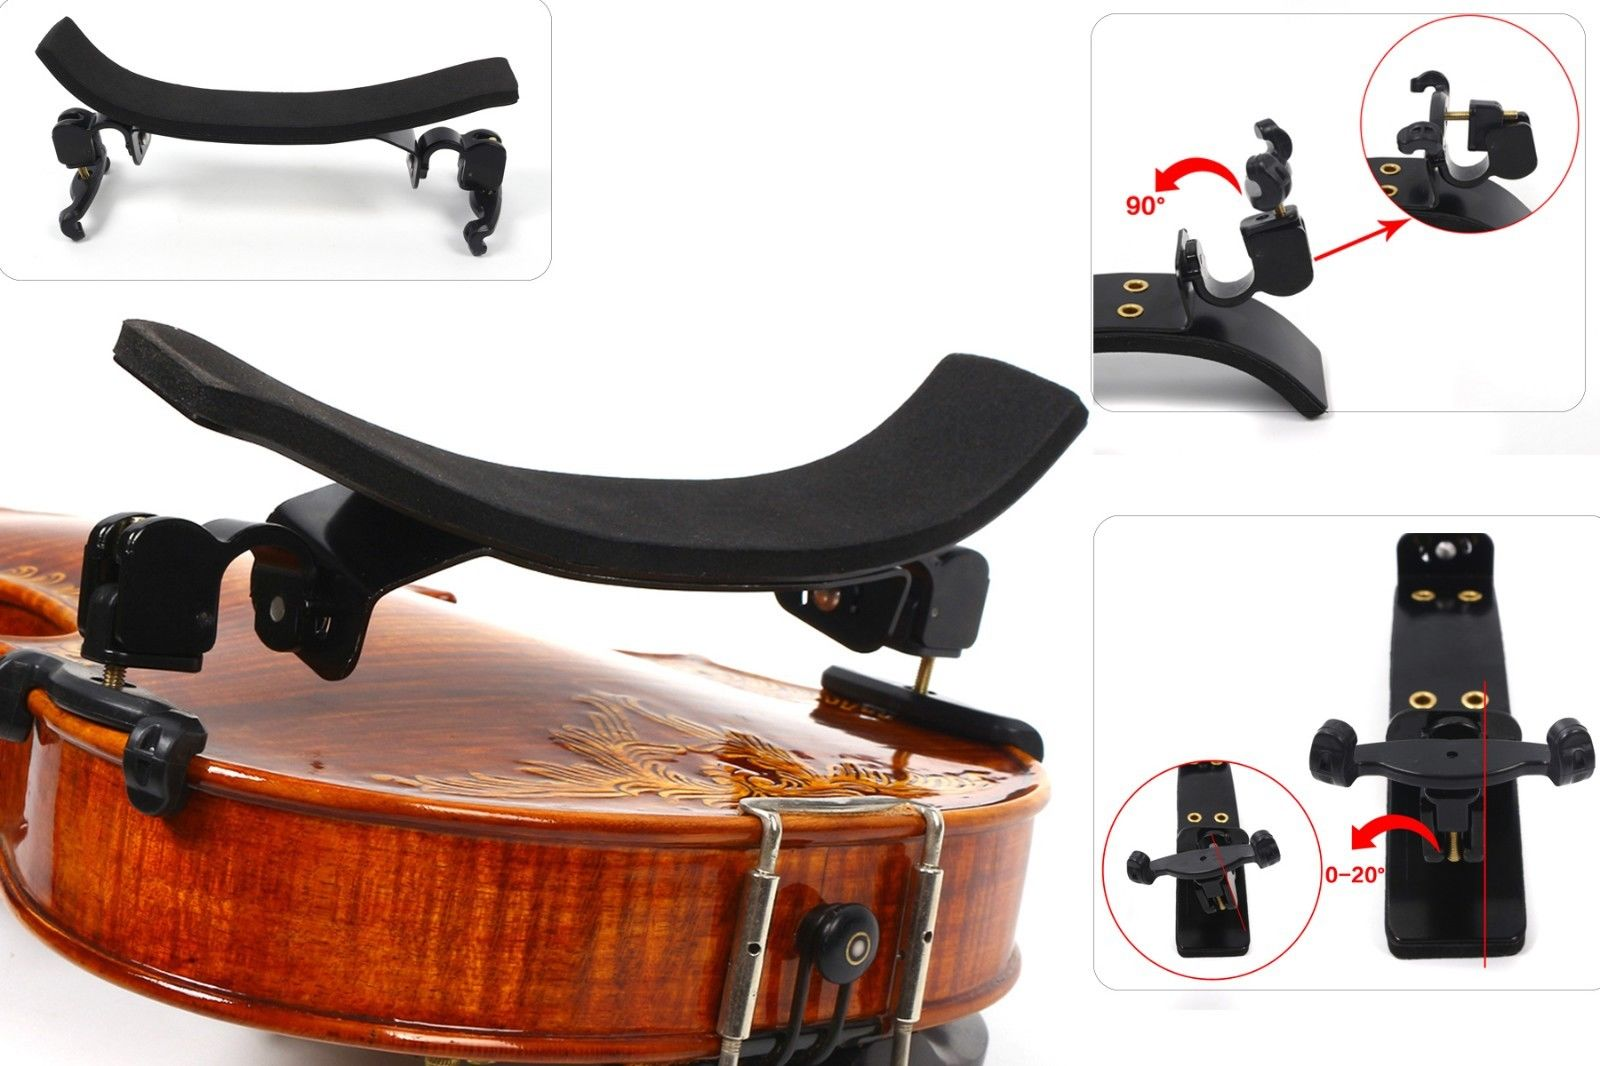 Yinfente High Quality Violin 3/4-4/4 Violin Bon Style Adjustable Shoulder Rest Pad Support Parts Accessories Fittings new professional violin use 4 4 full size adjustable maple wood violin shoulder rest support for violin parts